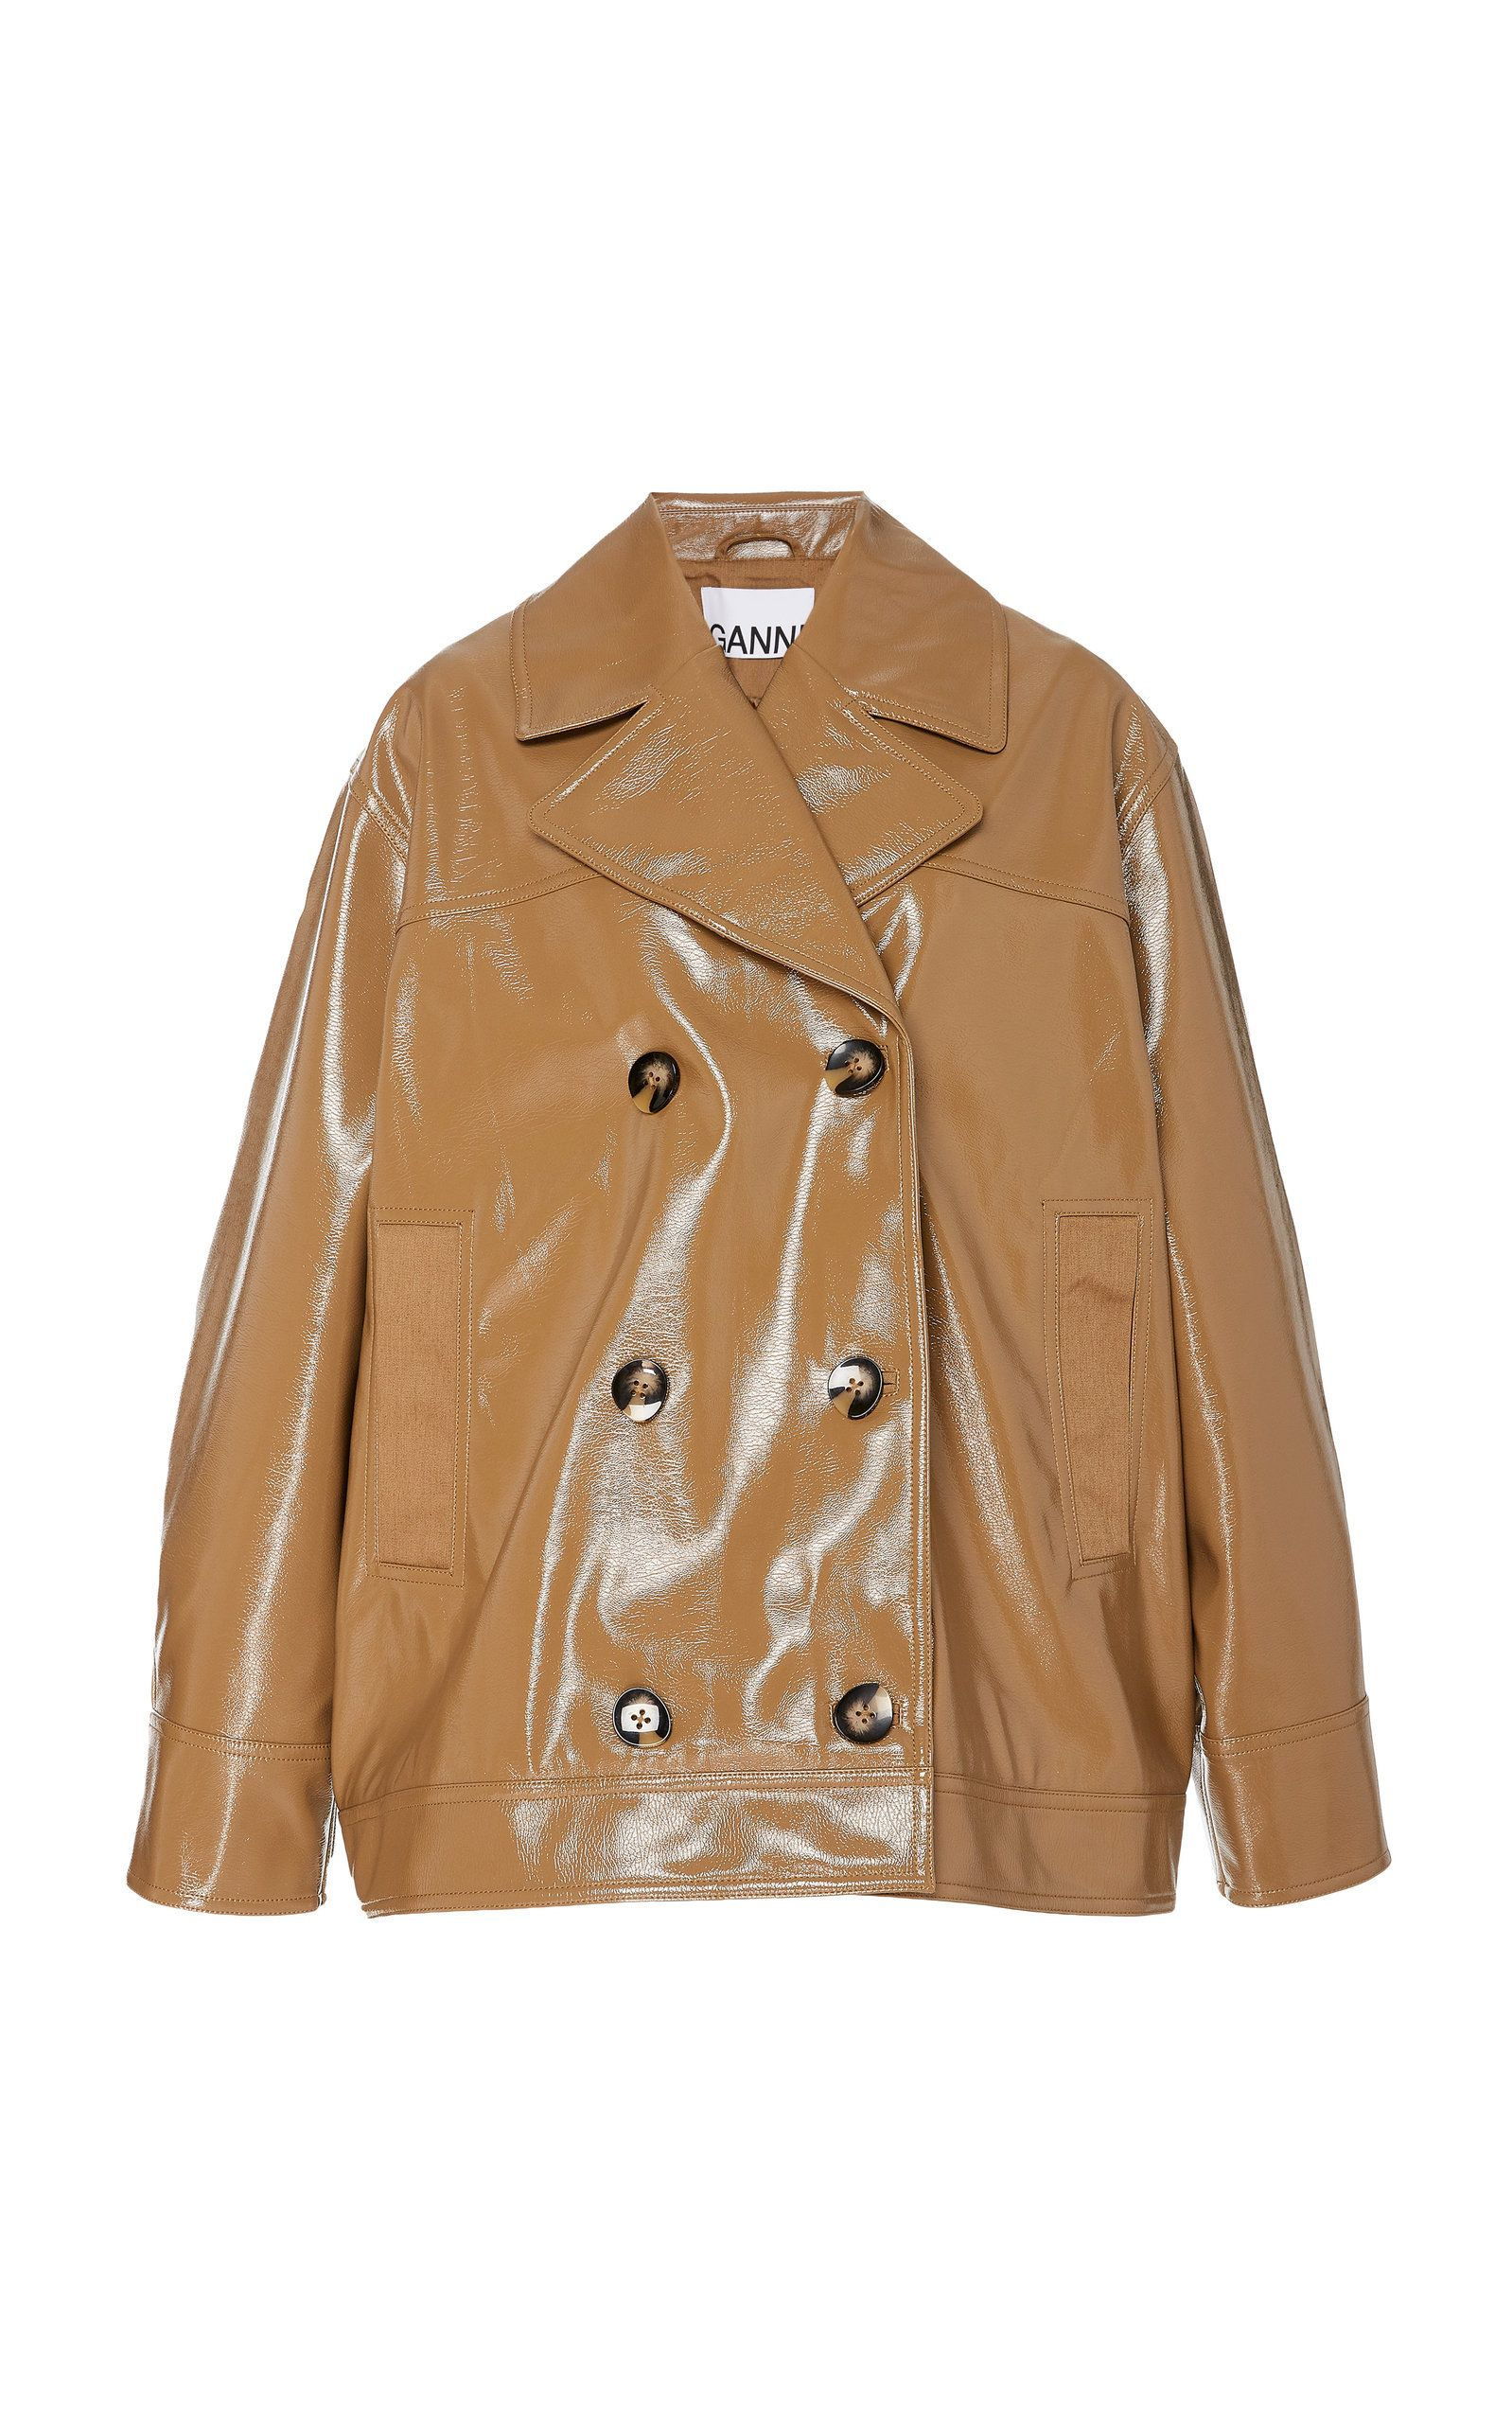 354c757f 25 Leather Jackets Outfits for Women 2018 - How to Wear A Leather Jacket